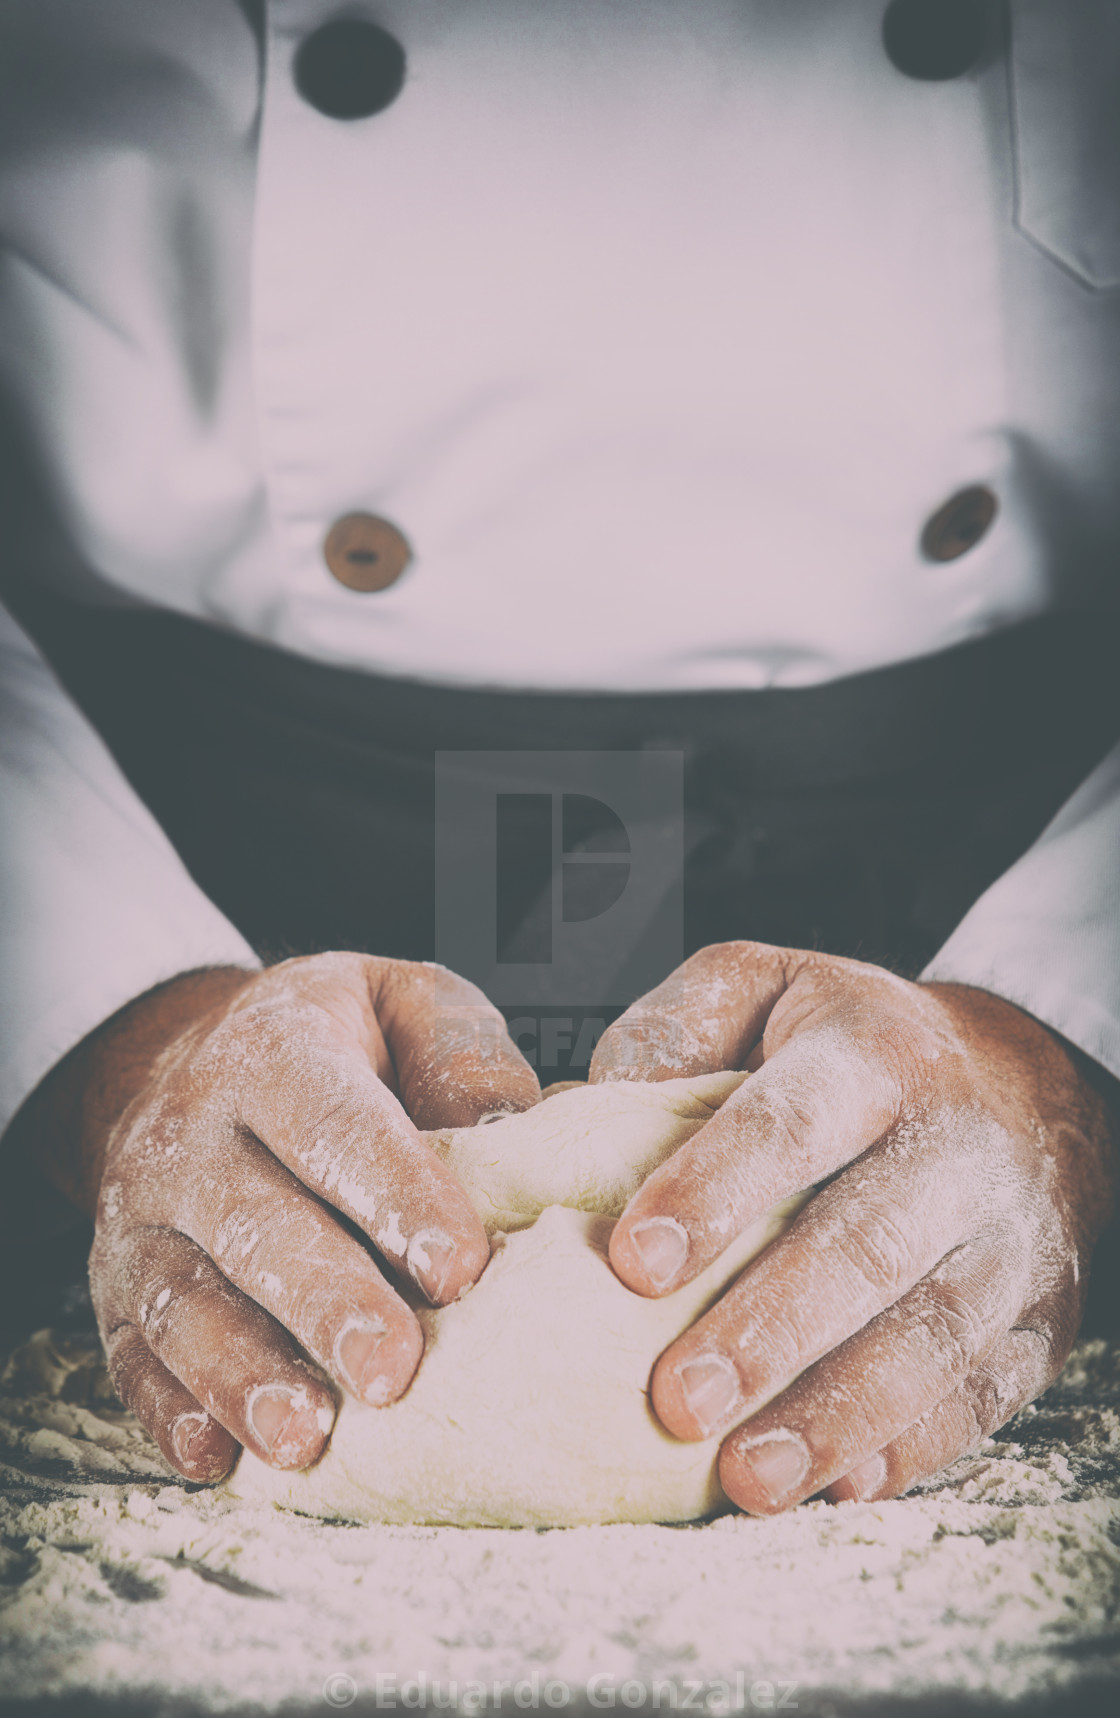 """Baker kneading dough with his hands"" stock image"